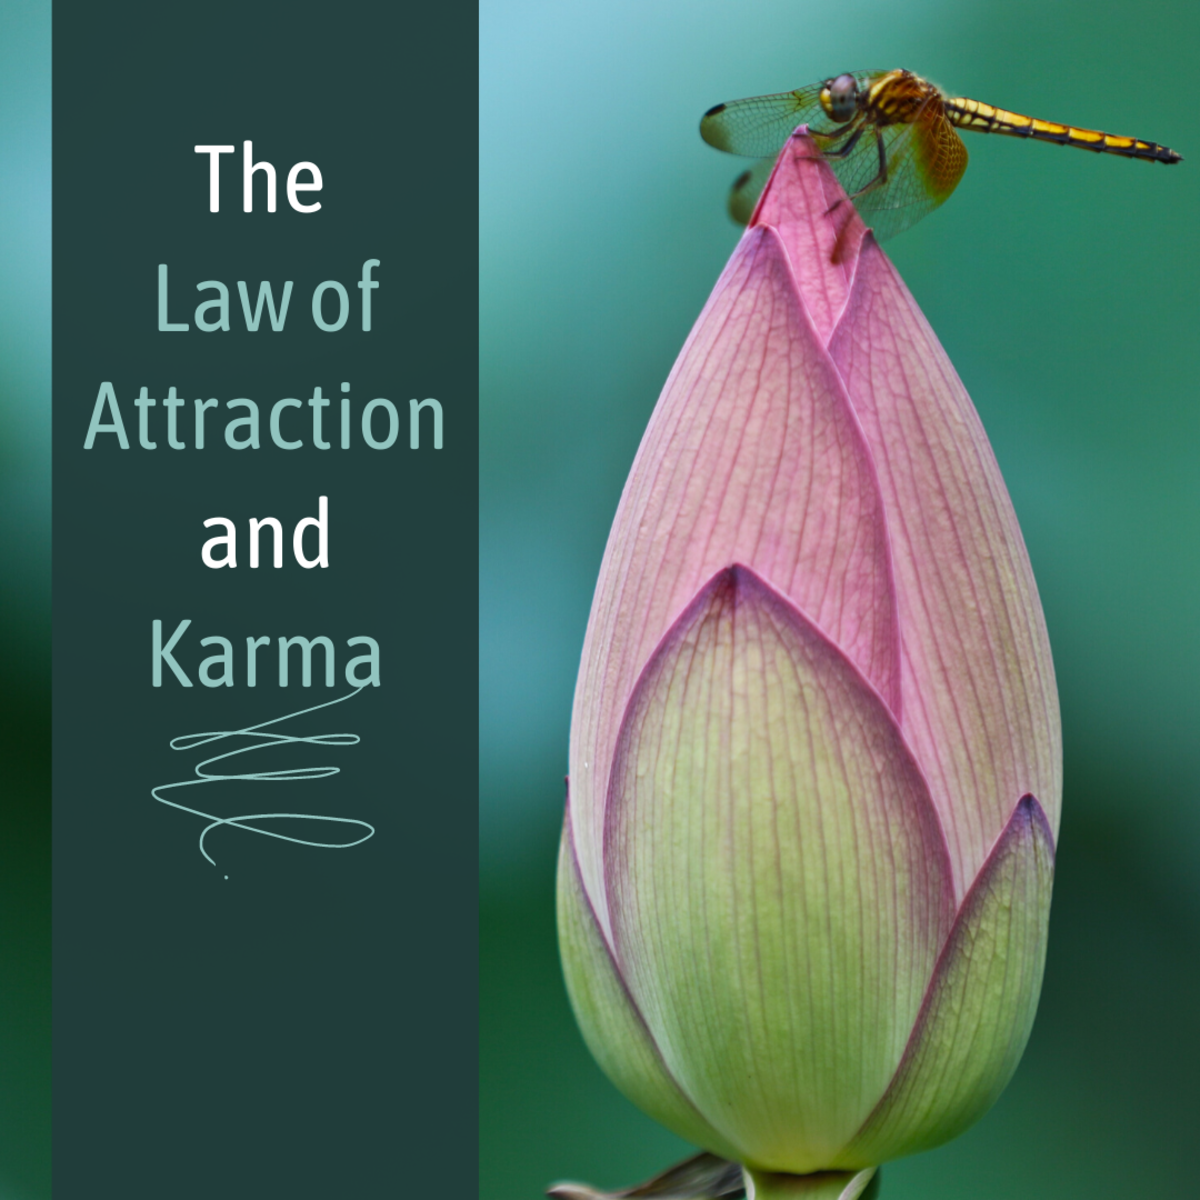 The Missing Karmic Link to the Law of Attraction